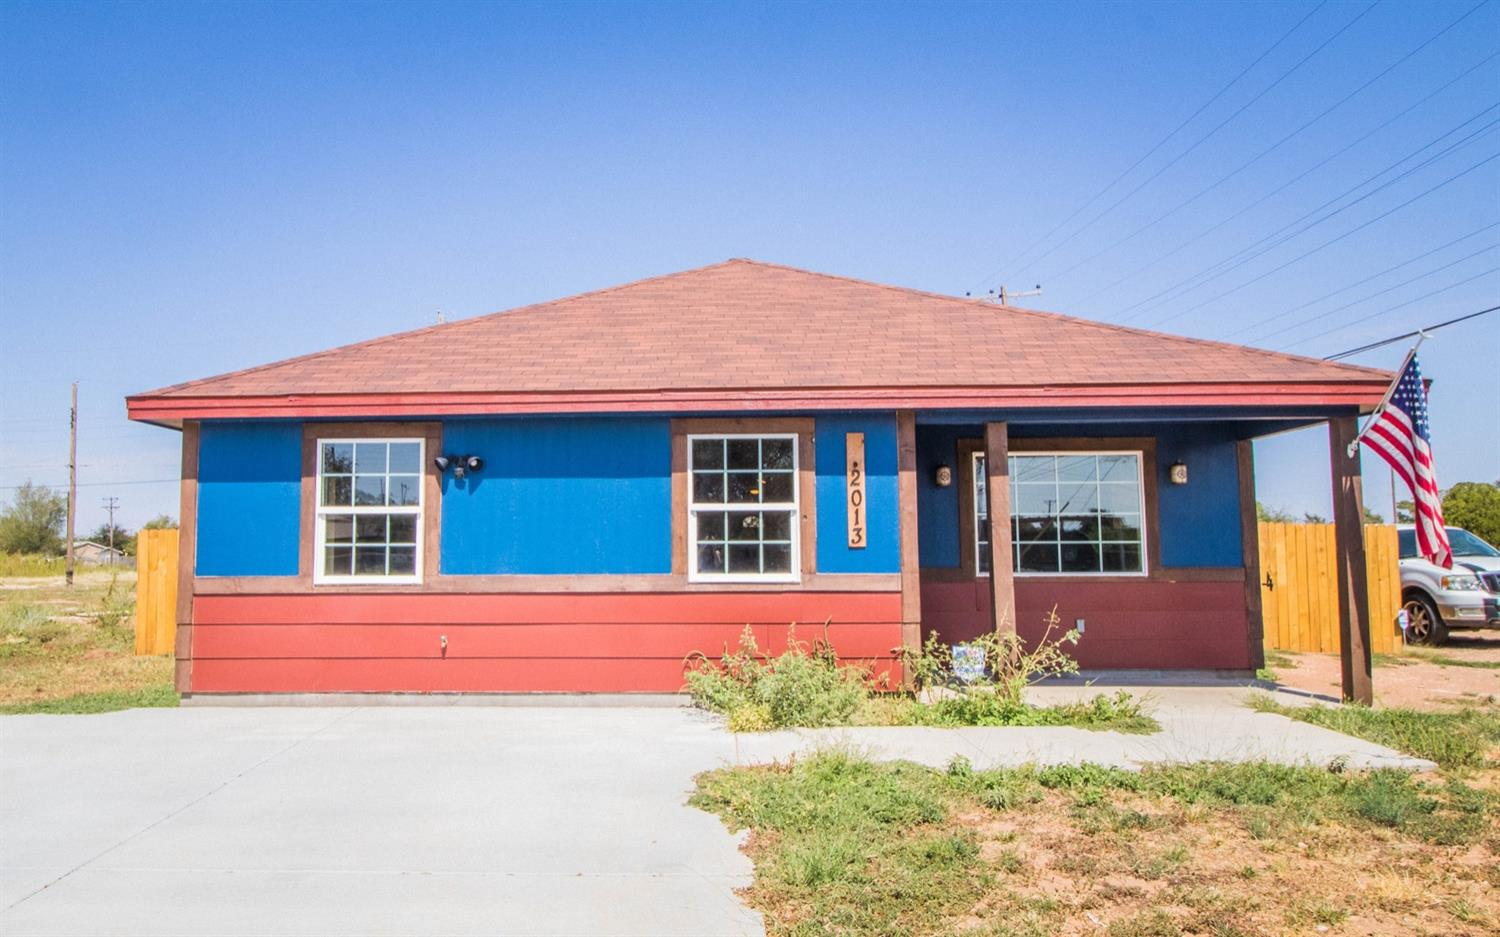 New Model Home Available.  Design your Own Home.  Lots Available.  Free consultation services.  LOW monthly Payments.  Approx $697/month.  Call now to Tour the Model Home.  Visit our website.  www.tearhomes.com